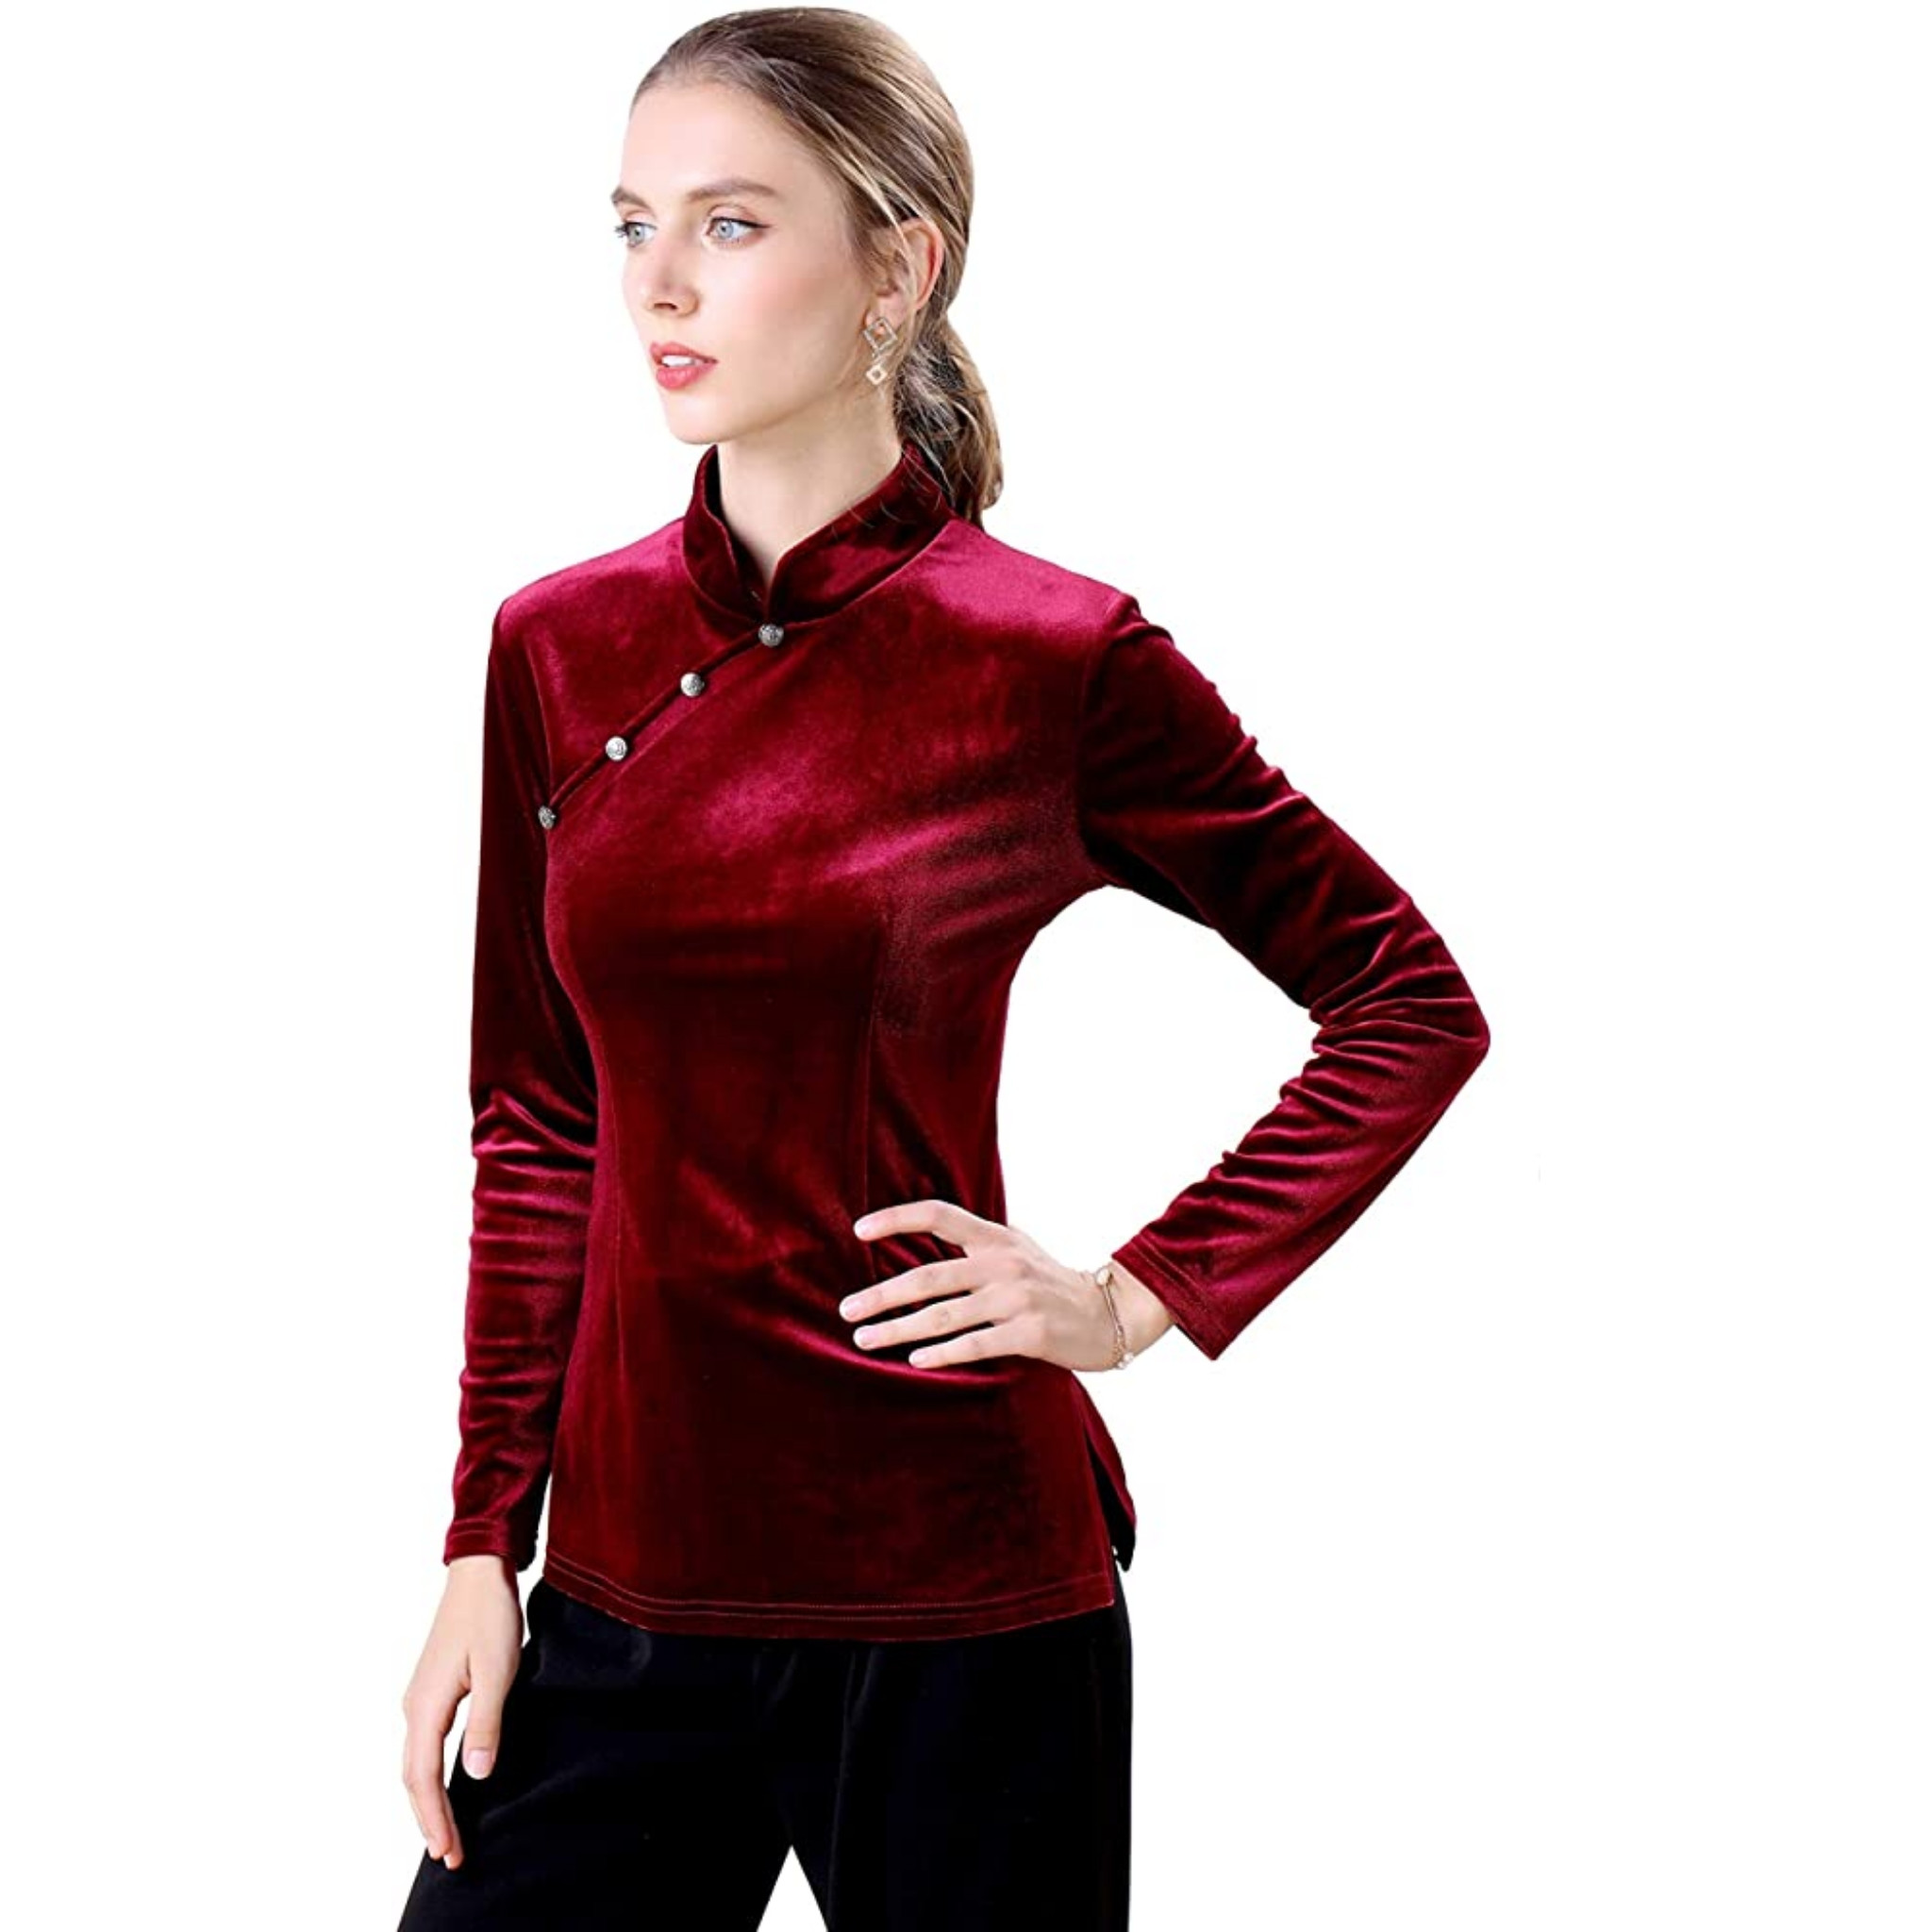 Fifth Avenue Womens Button Neck Detail Velvet Stitched Western Top - FAWWT16